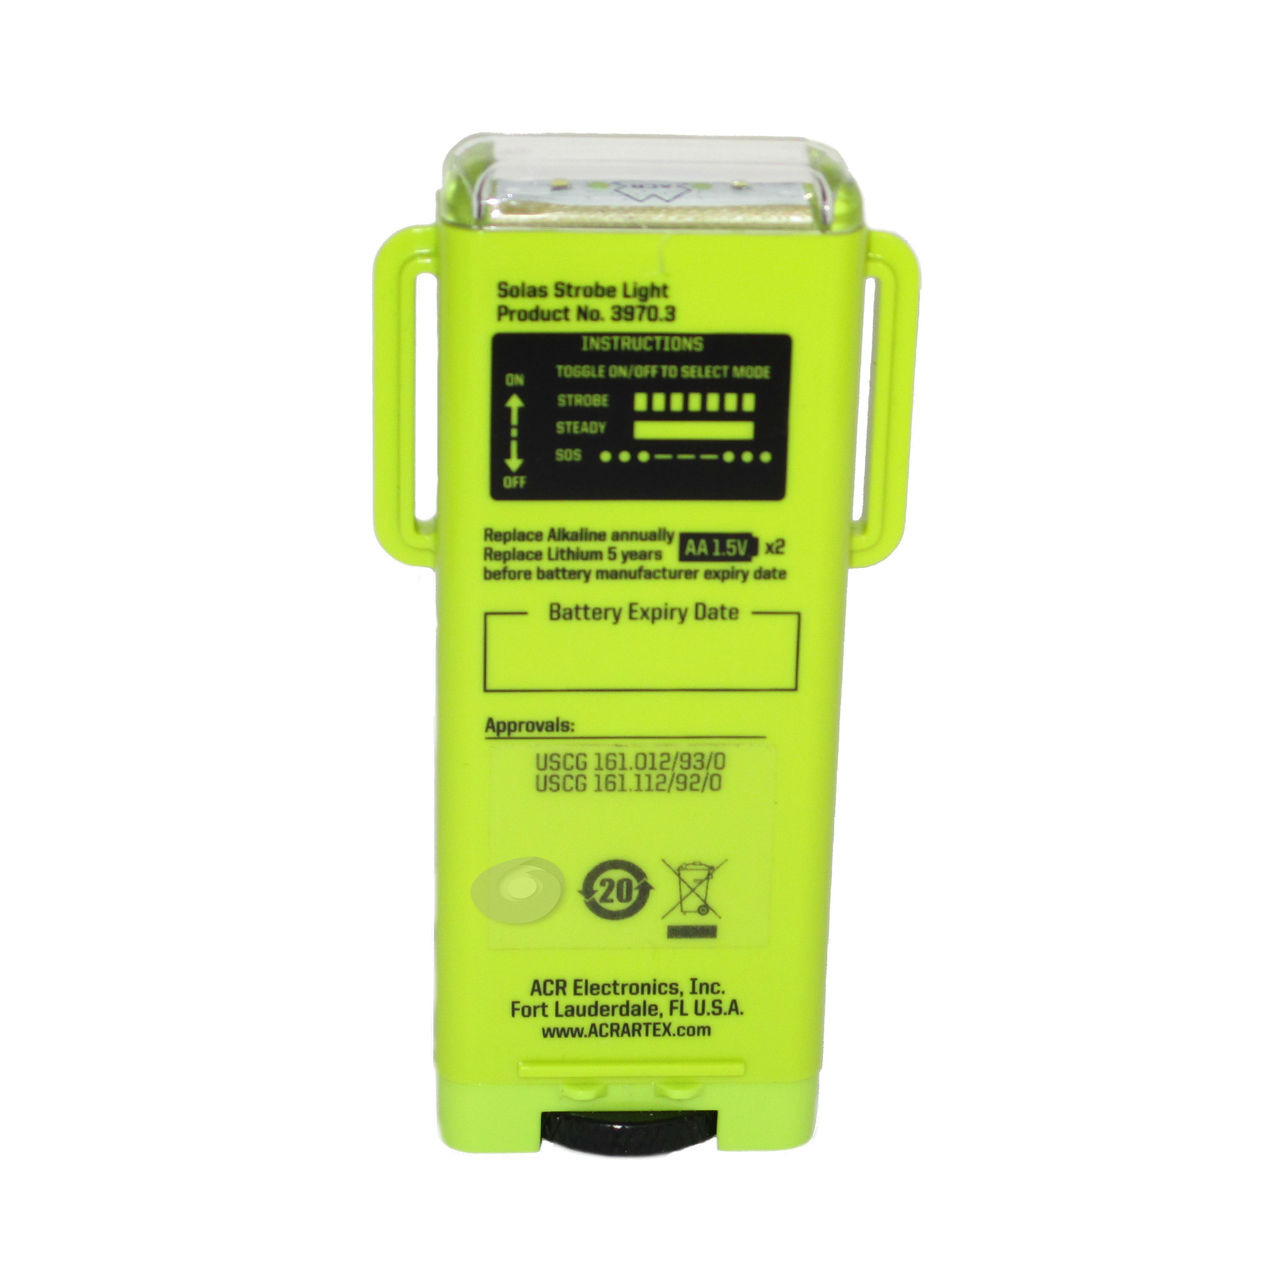 With a single set of AA alkaline batteries, (Skippersmate recommends Lithium batteries) the Firefly PRO will continuously strobe for over 56 hours or use the Steady-On feature for 28 hours. That is twice as long as our competitors and exceeds USCG and SOLAS requirements by over 48 hours.